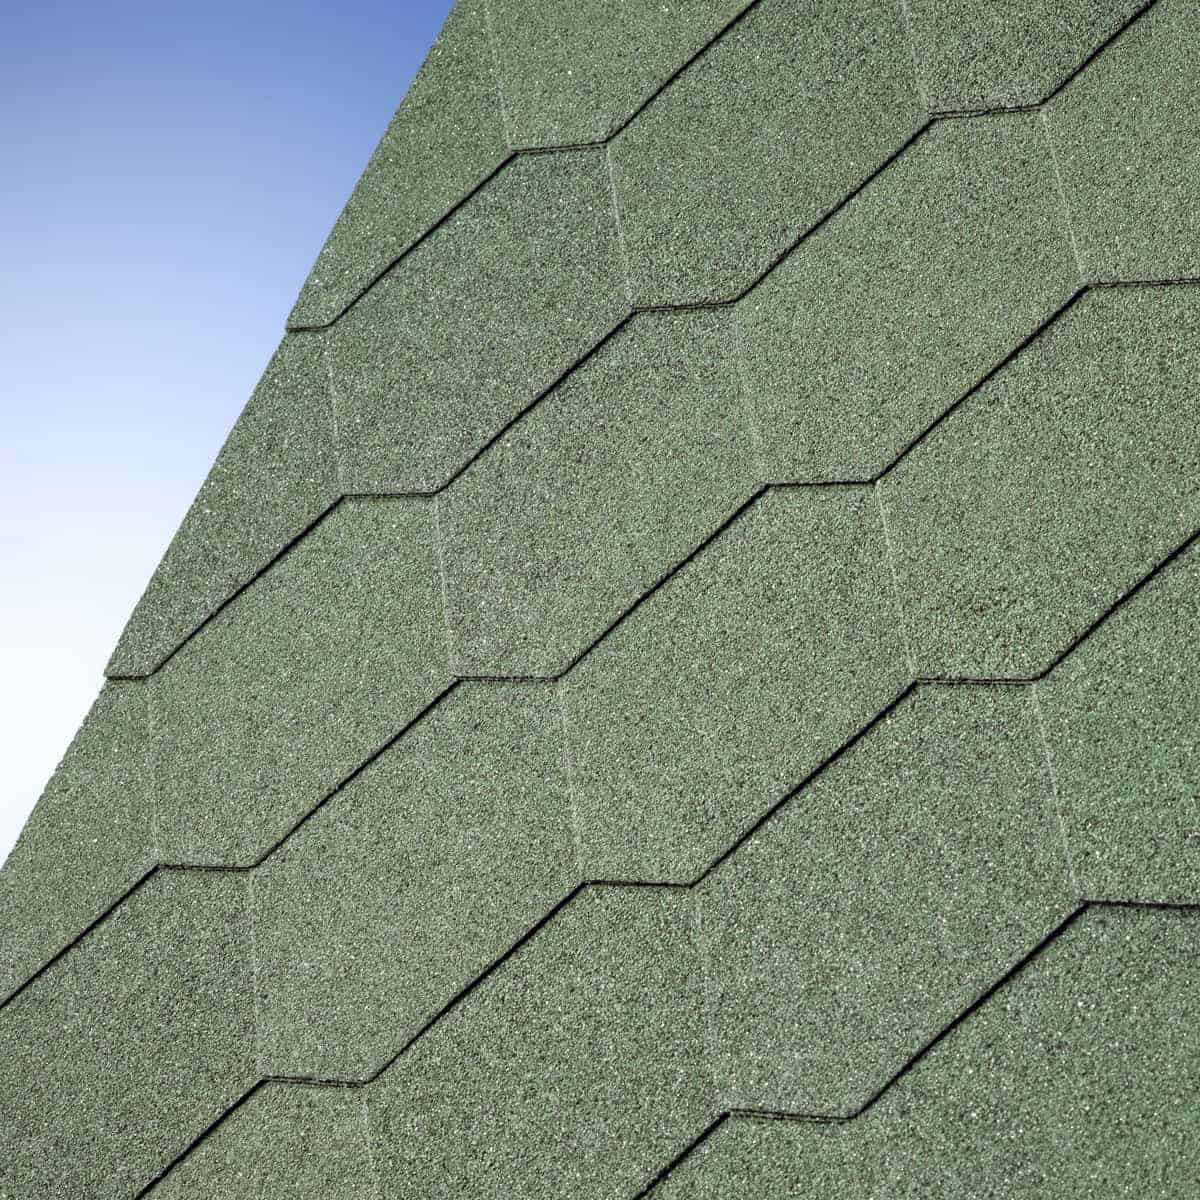 Armourshield Hexagonal Shingles Ajw Distribution